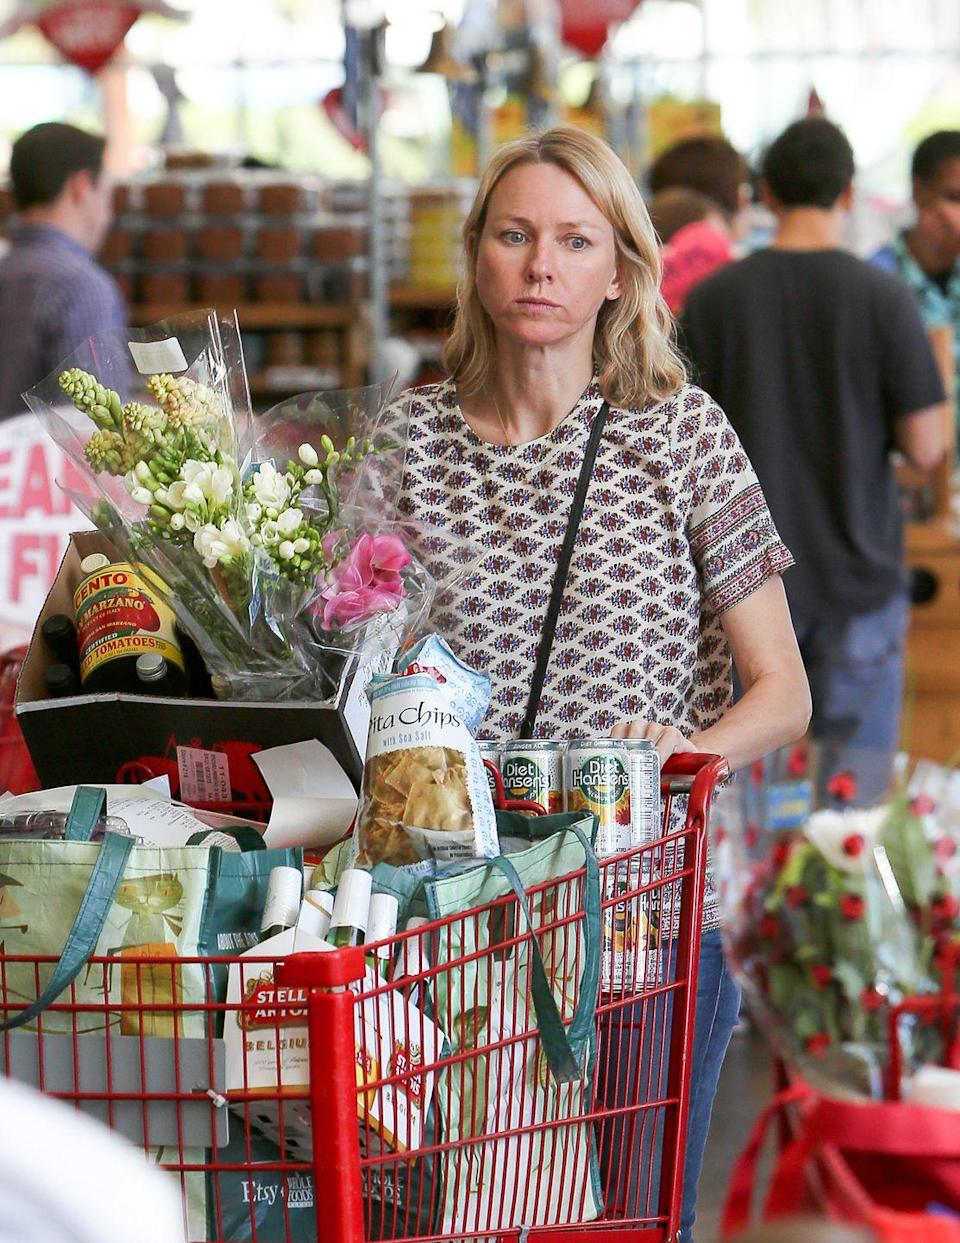 """<p>Trader Joe's started selling fresh cut flowers in 1994 and since then the store's flower reputation has blossomed. Flowers are delivered in a fresh shipment every day, which means shoppers get the freshest stems possible. If you have an event you need to reserve a few bouquets for, you can <a href=""""https://julieblanner.com/trader-joes-flowers/"""" rel=""""nofollow noopener"""" target=""""_blank"""" data-ylk=""""slk:work out an order ahead of time"""" class=""""link rapid-noclick-resp"""">work out an order ahead of time</a> with an employee. </p>"""